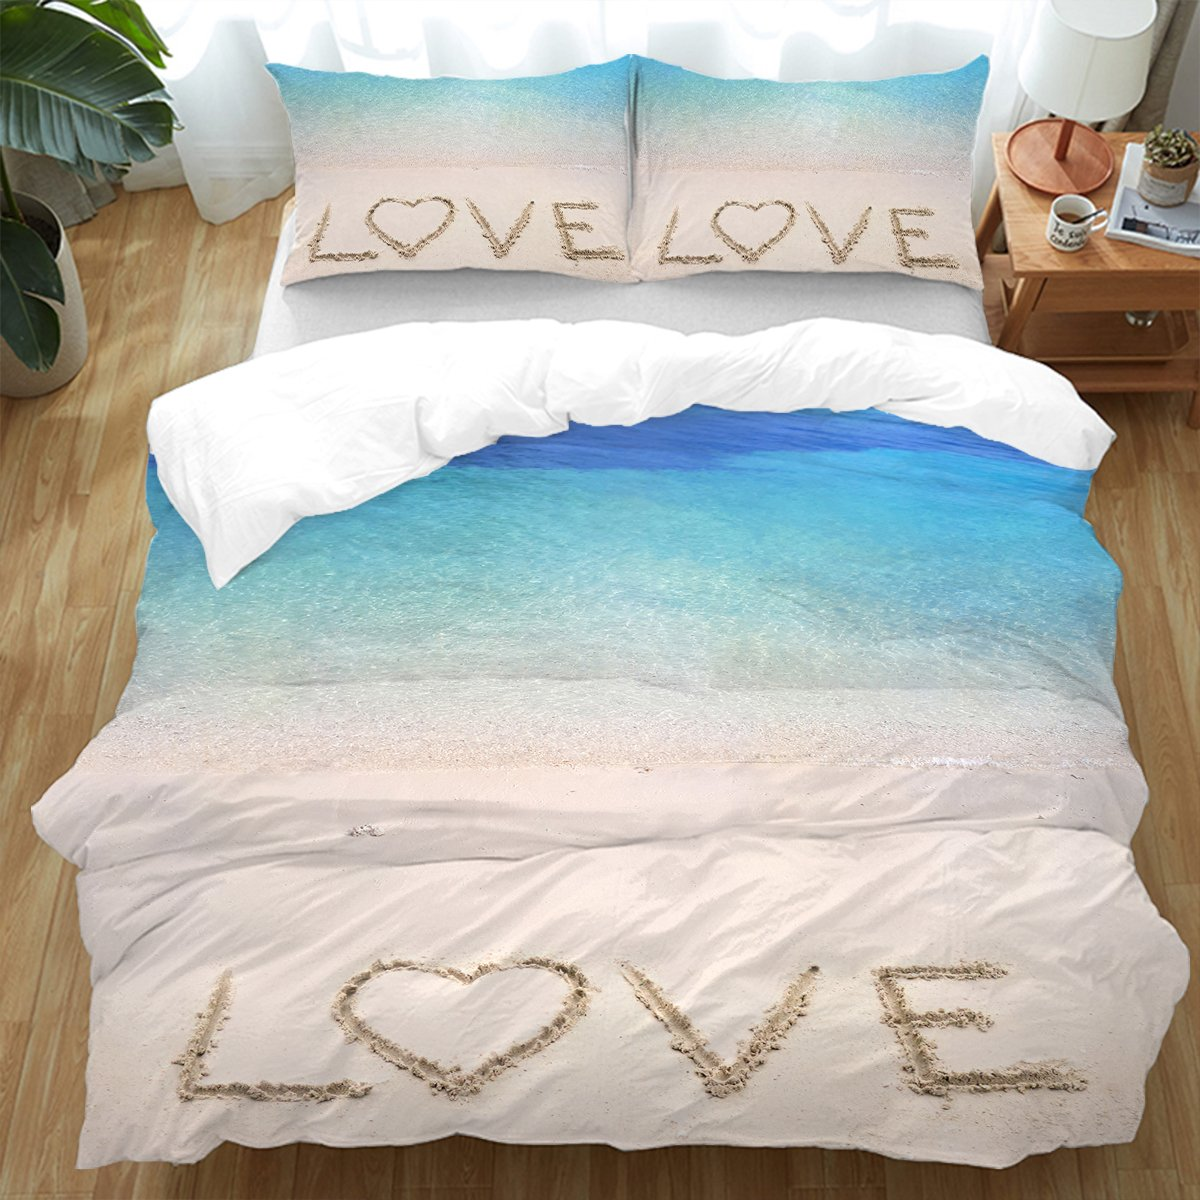 Sandy Love Bedding Set-Coastal Passion